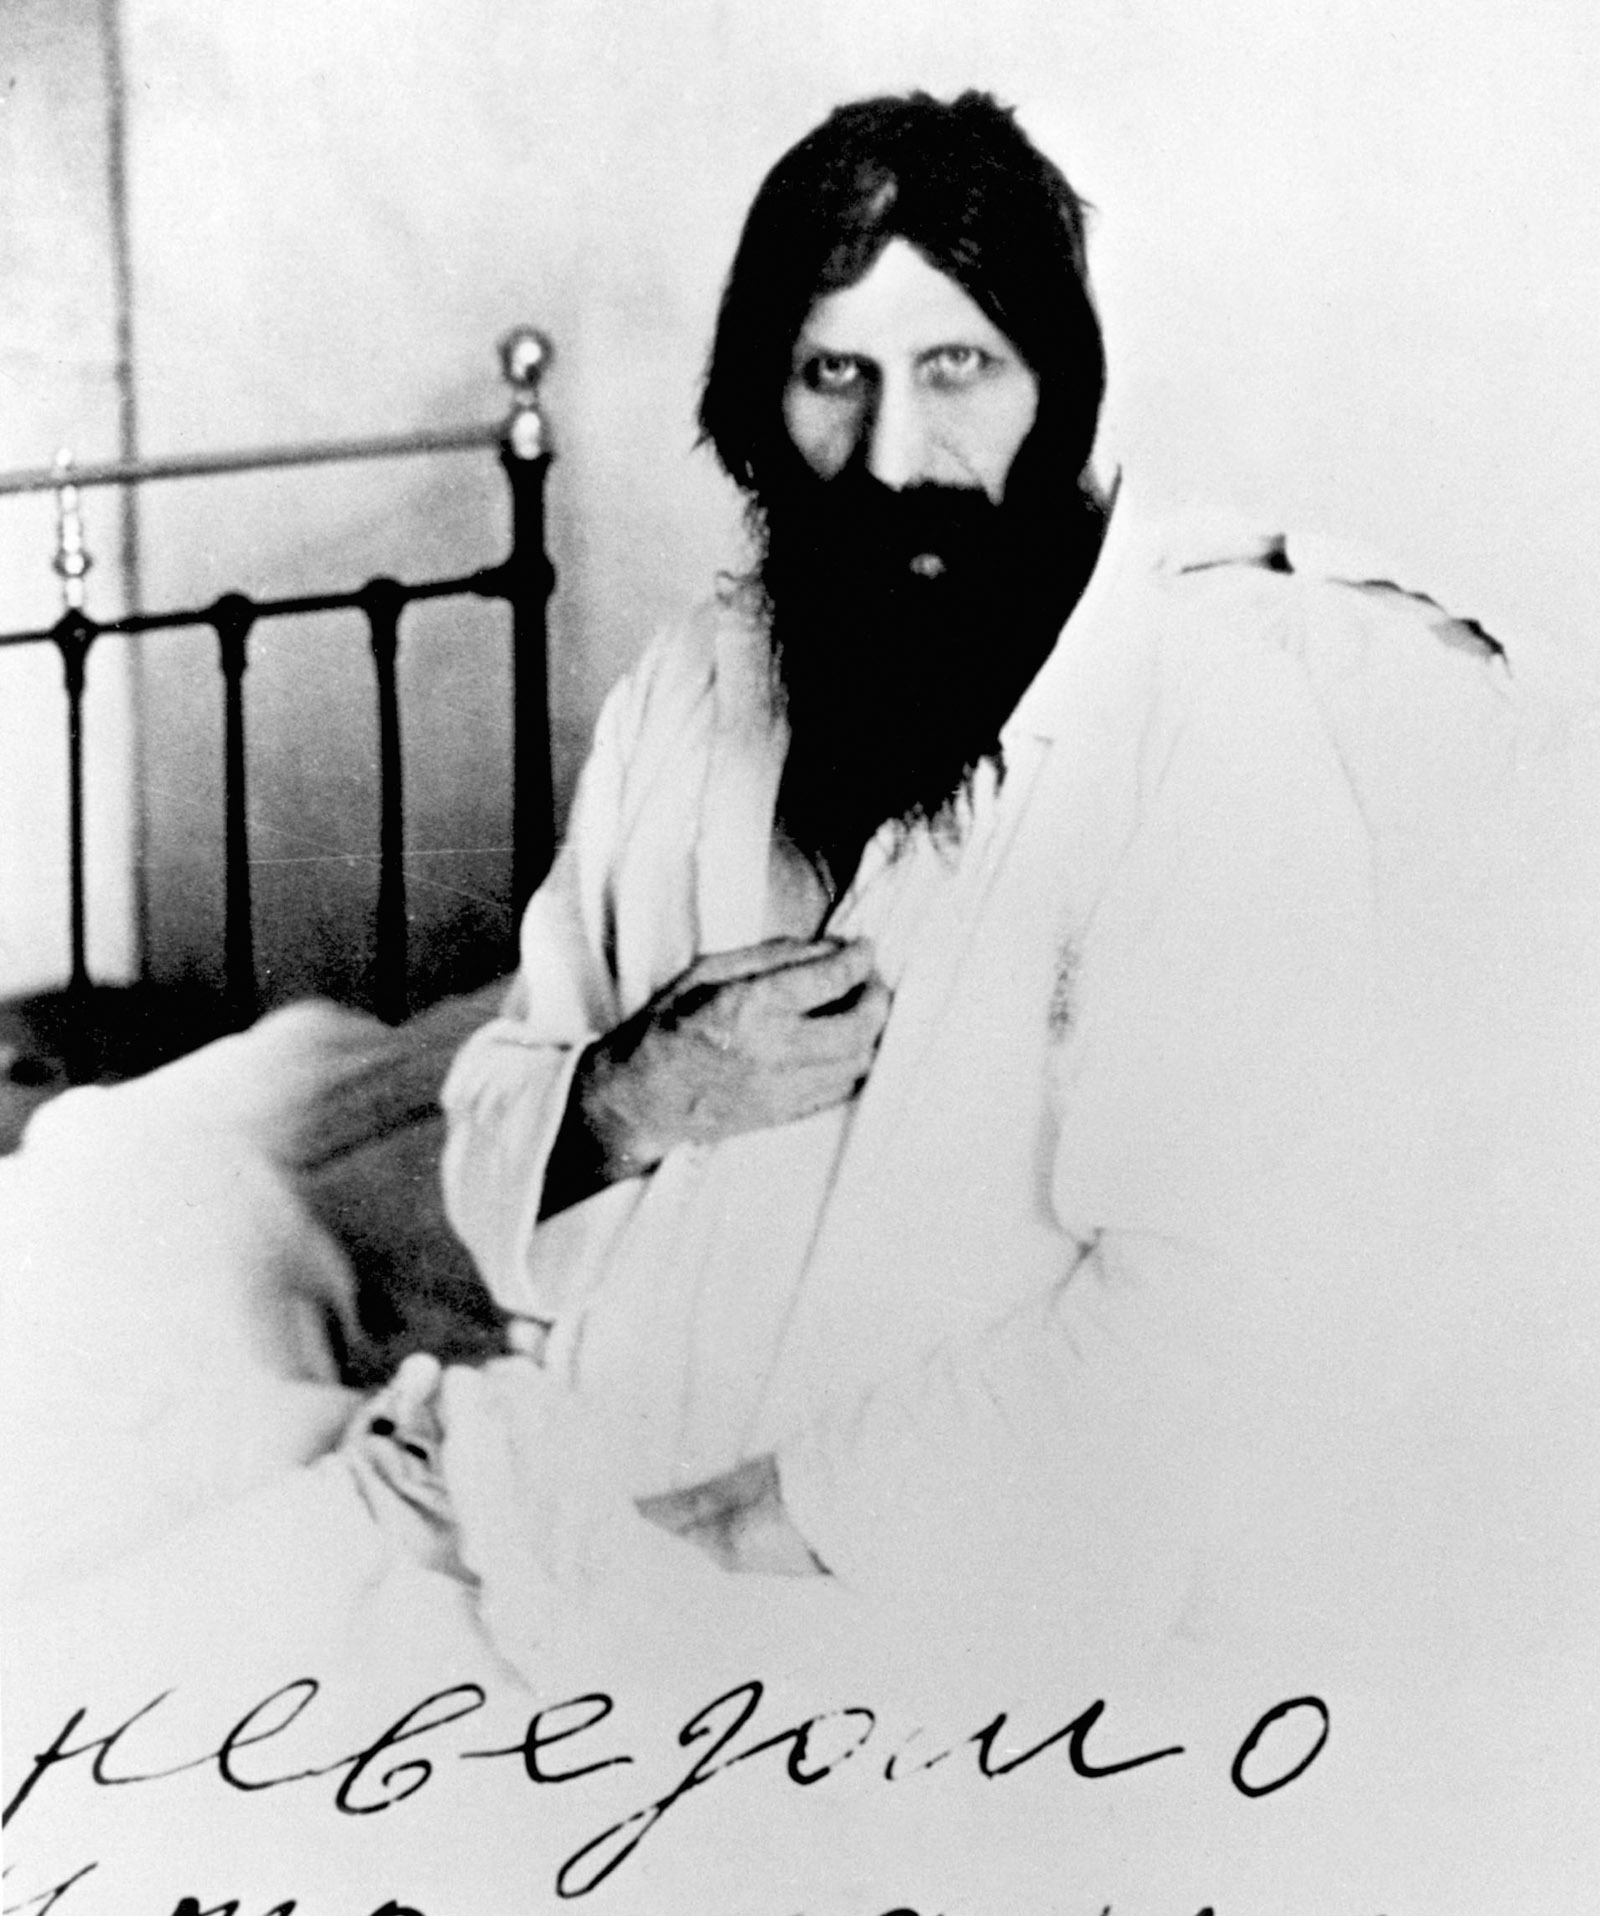 Gregory Rasputin in the hospital after being stabbed in an attempted assassination, Tyumen, Siberia, 1914. The writing at the bottom is a detail of Rasputin's inscription, which Douglas Smith translates as follows: 'God knows what is to become of us in the morn.'